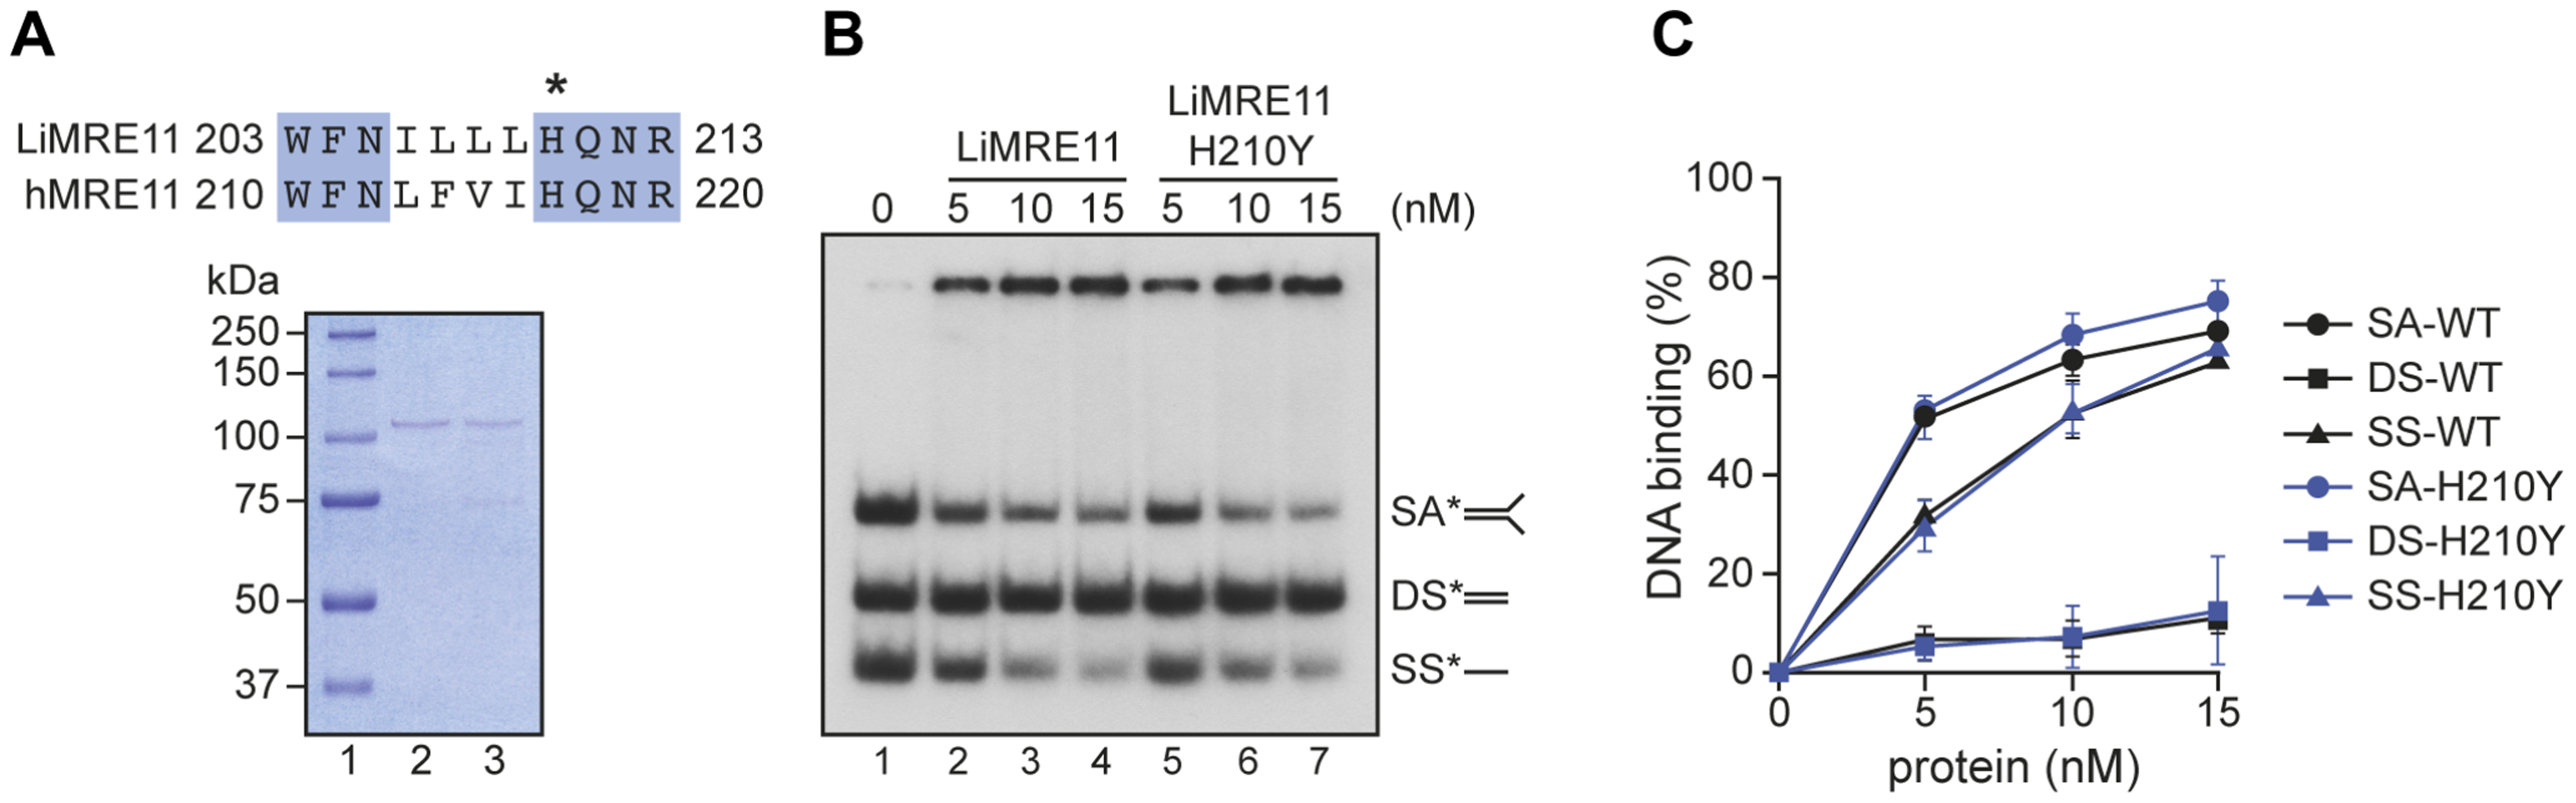 Purification and DNA binding of the <i>L. infantum</i> MRE11 protein.